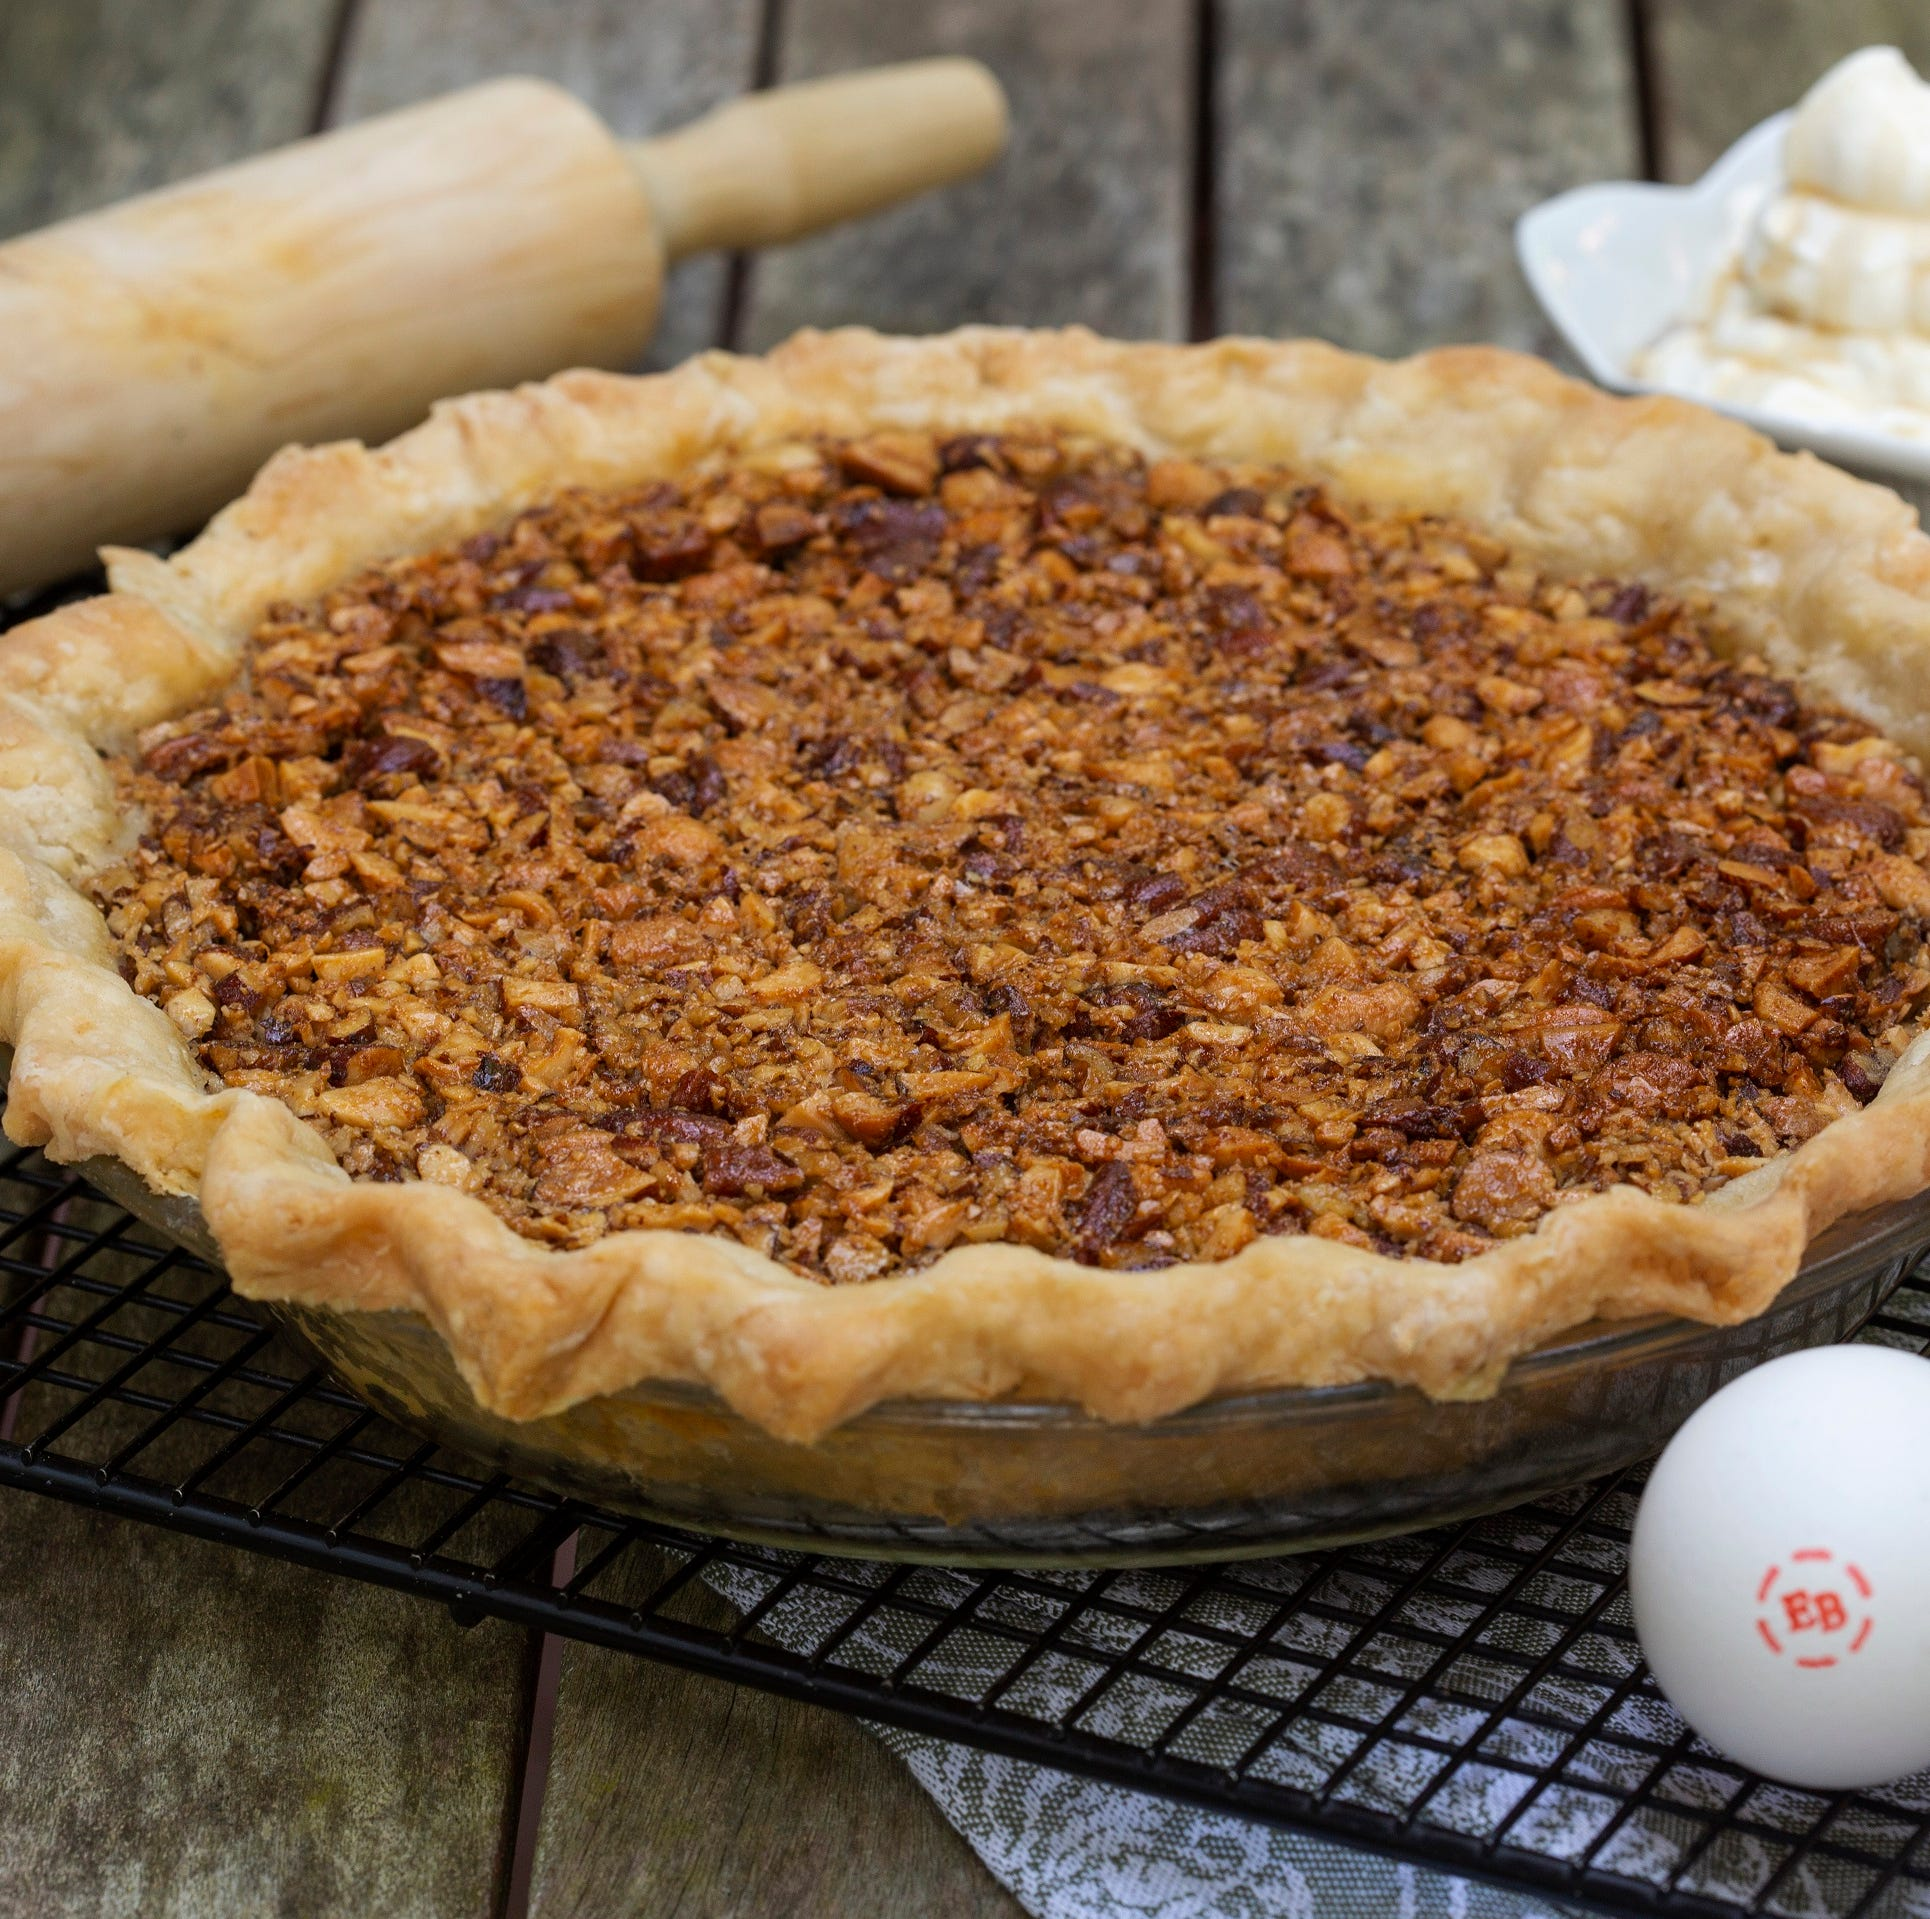 Maple syrup, Brandy nut pie recipe earns Appleton woman spot in national contest